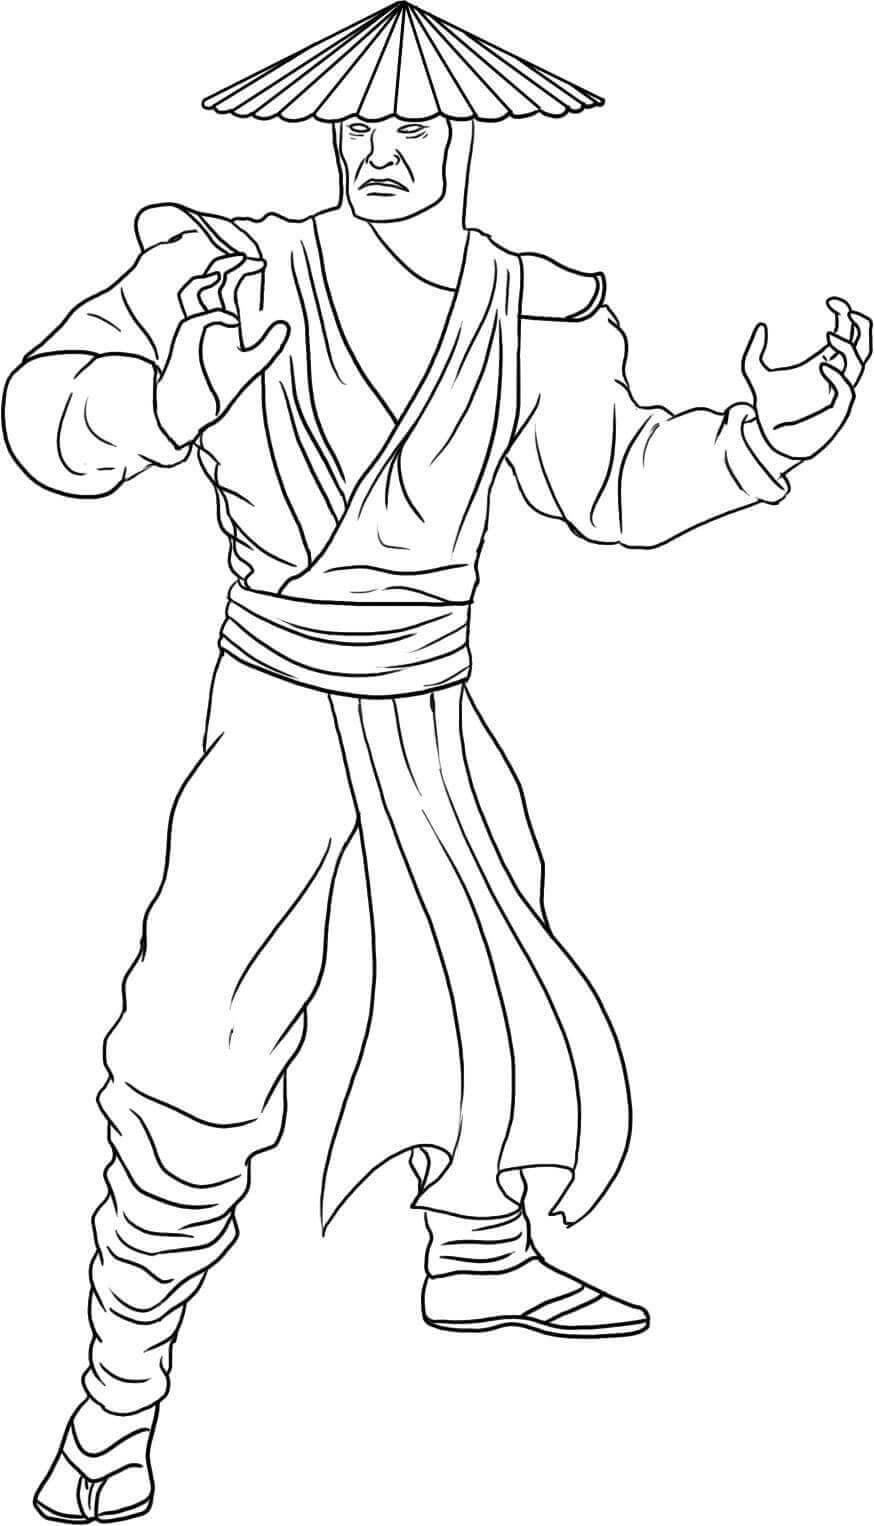 Free Mortal Kombat Coloring Pages